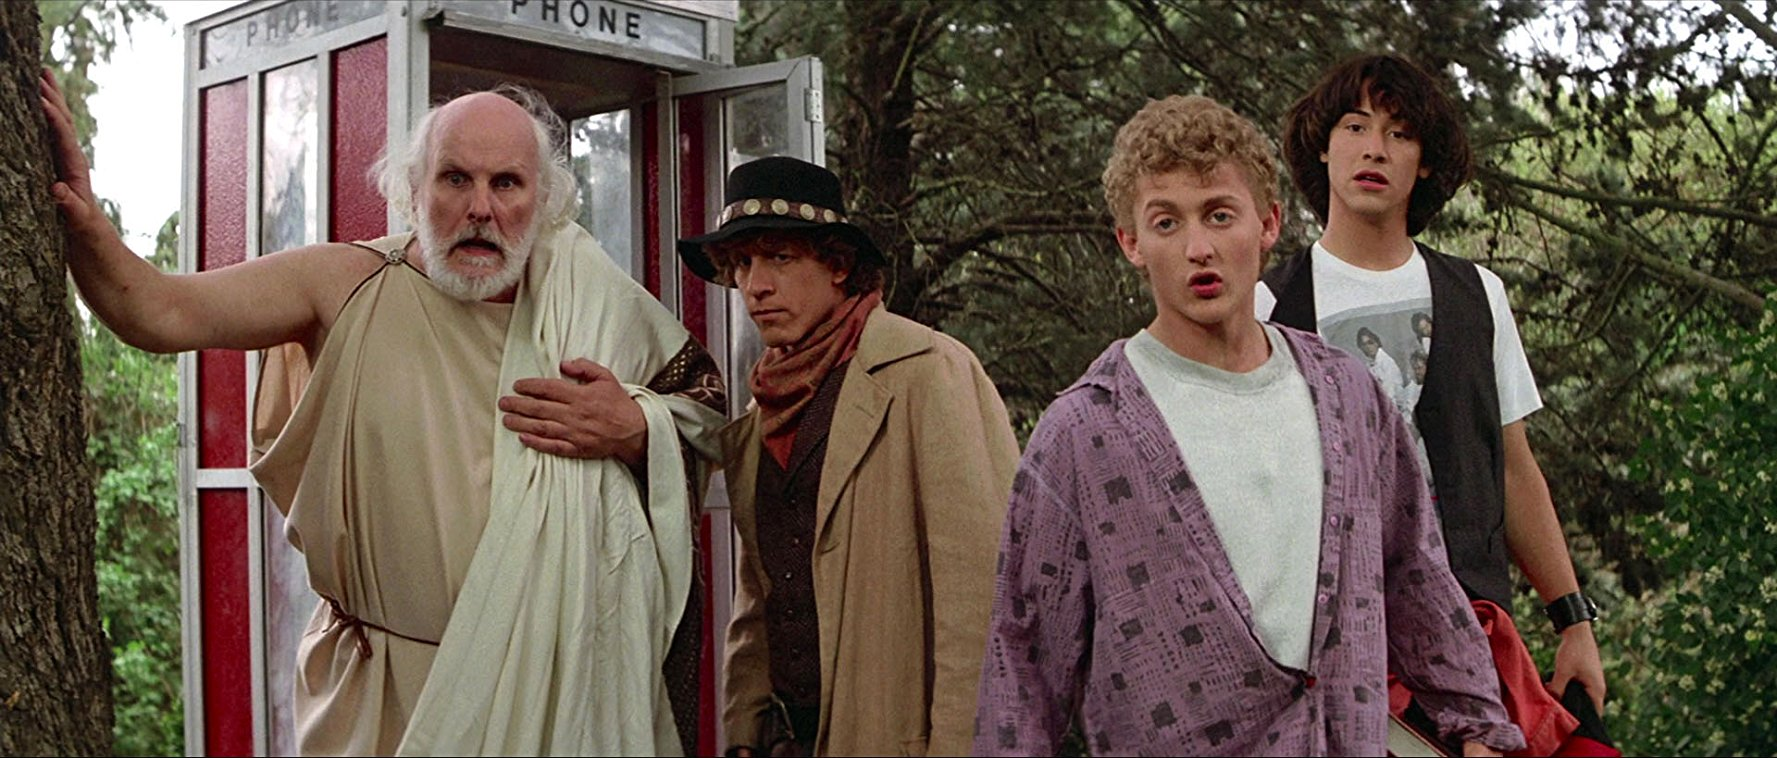 Still shot from the movie: Bill & Ted's Excellent Adventure.